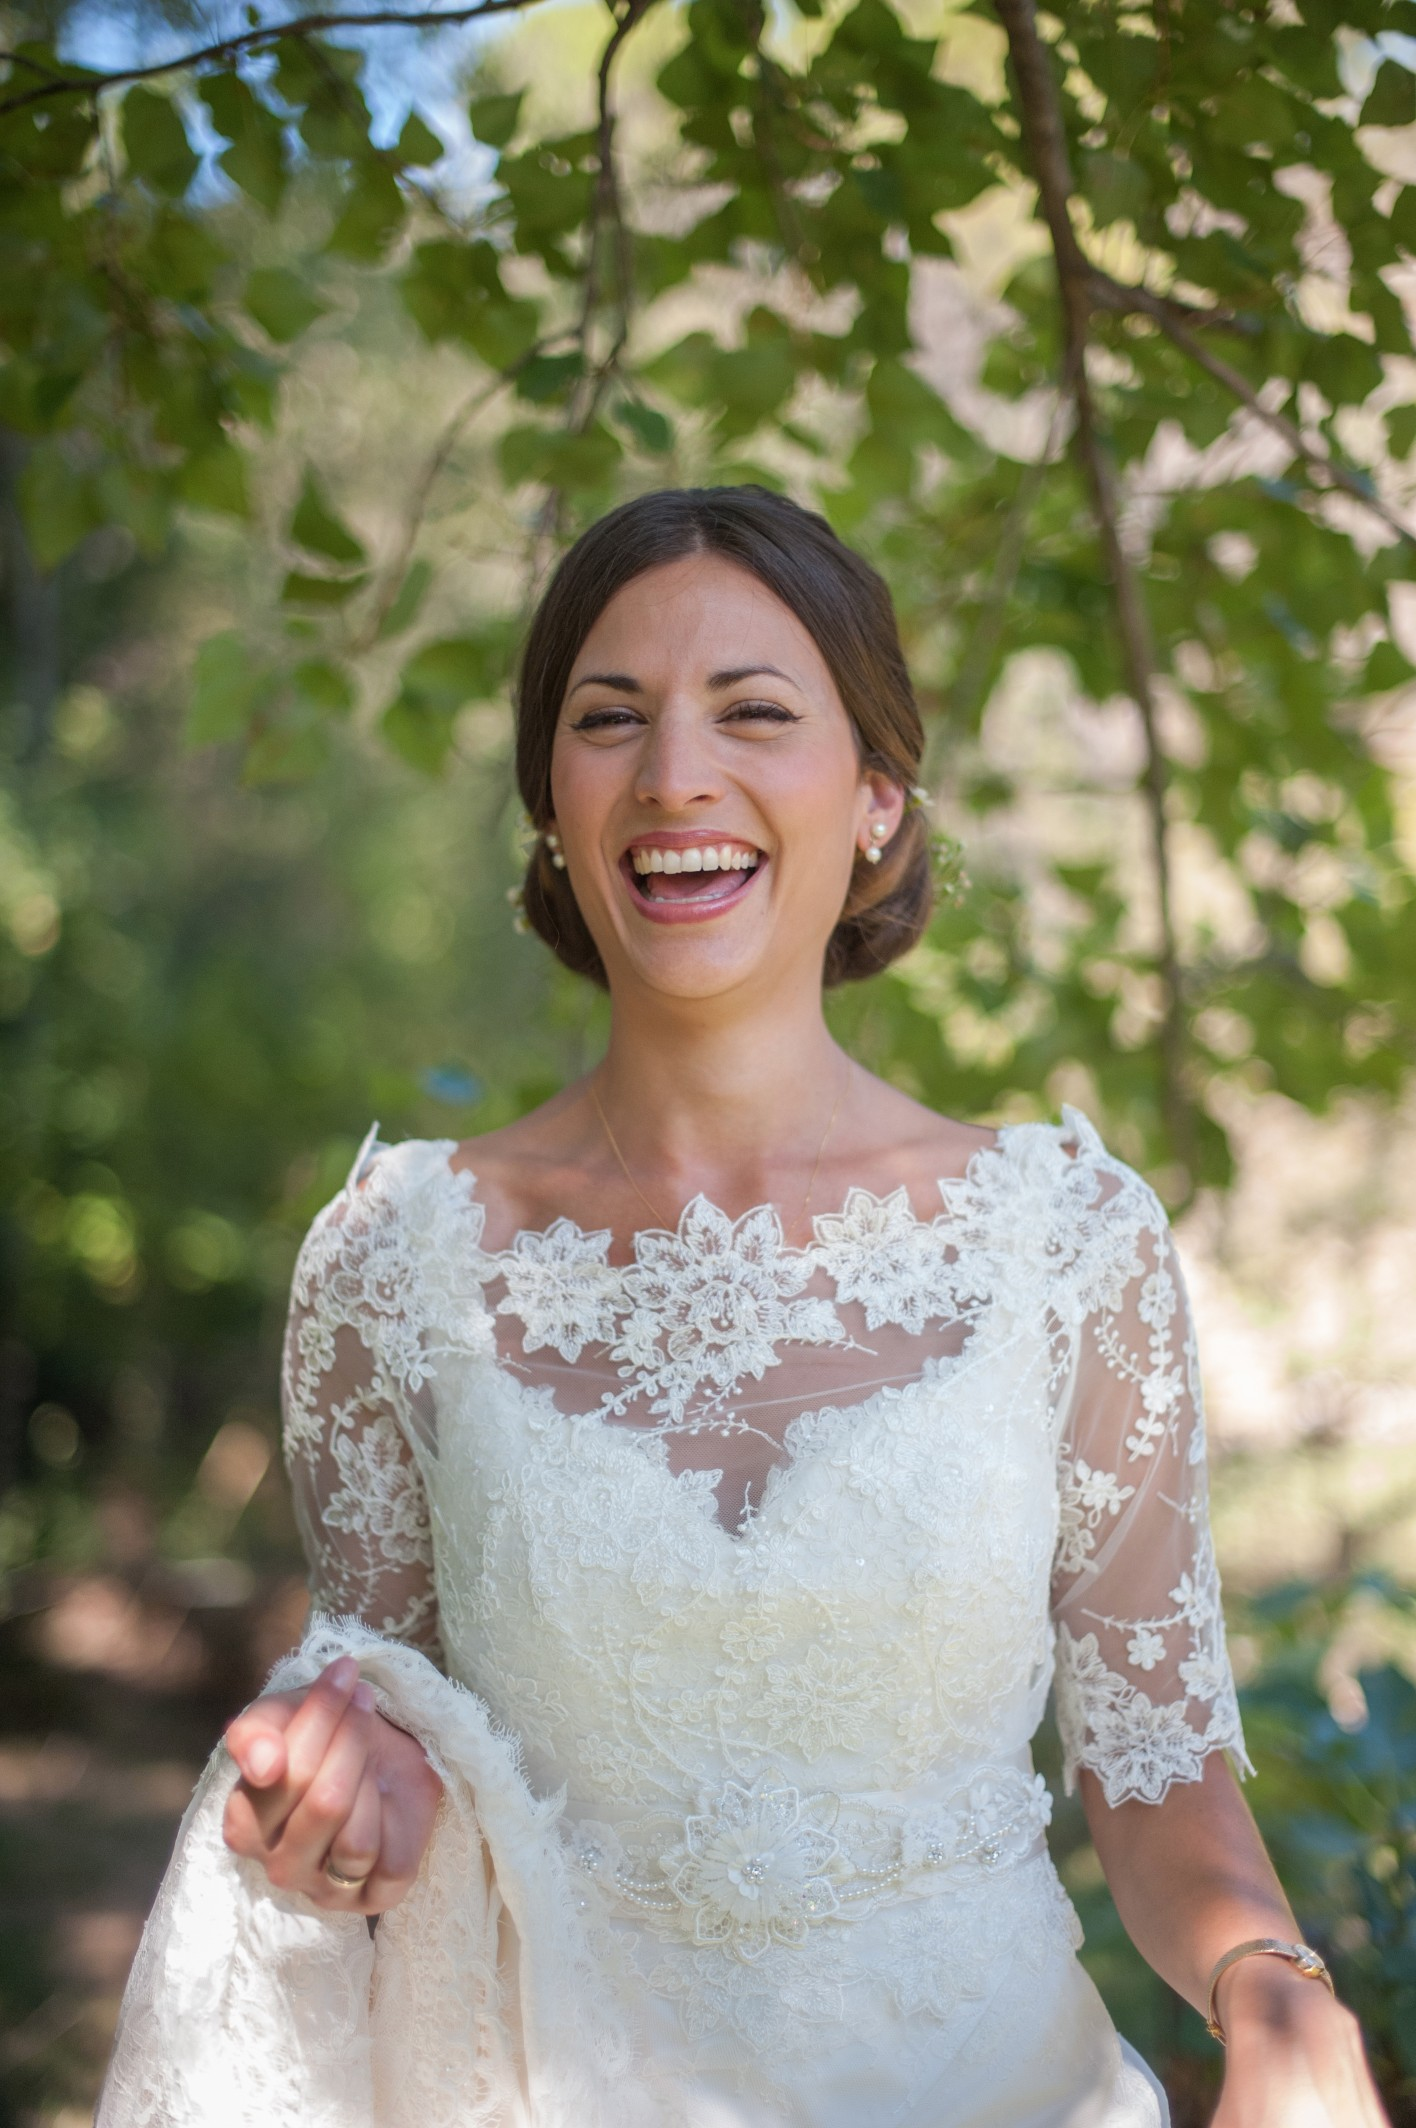 Wedding photography - South of France wedding - the happy bride